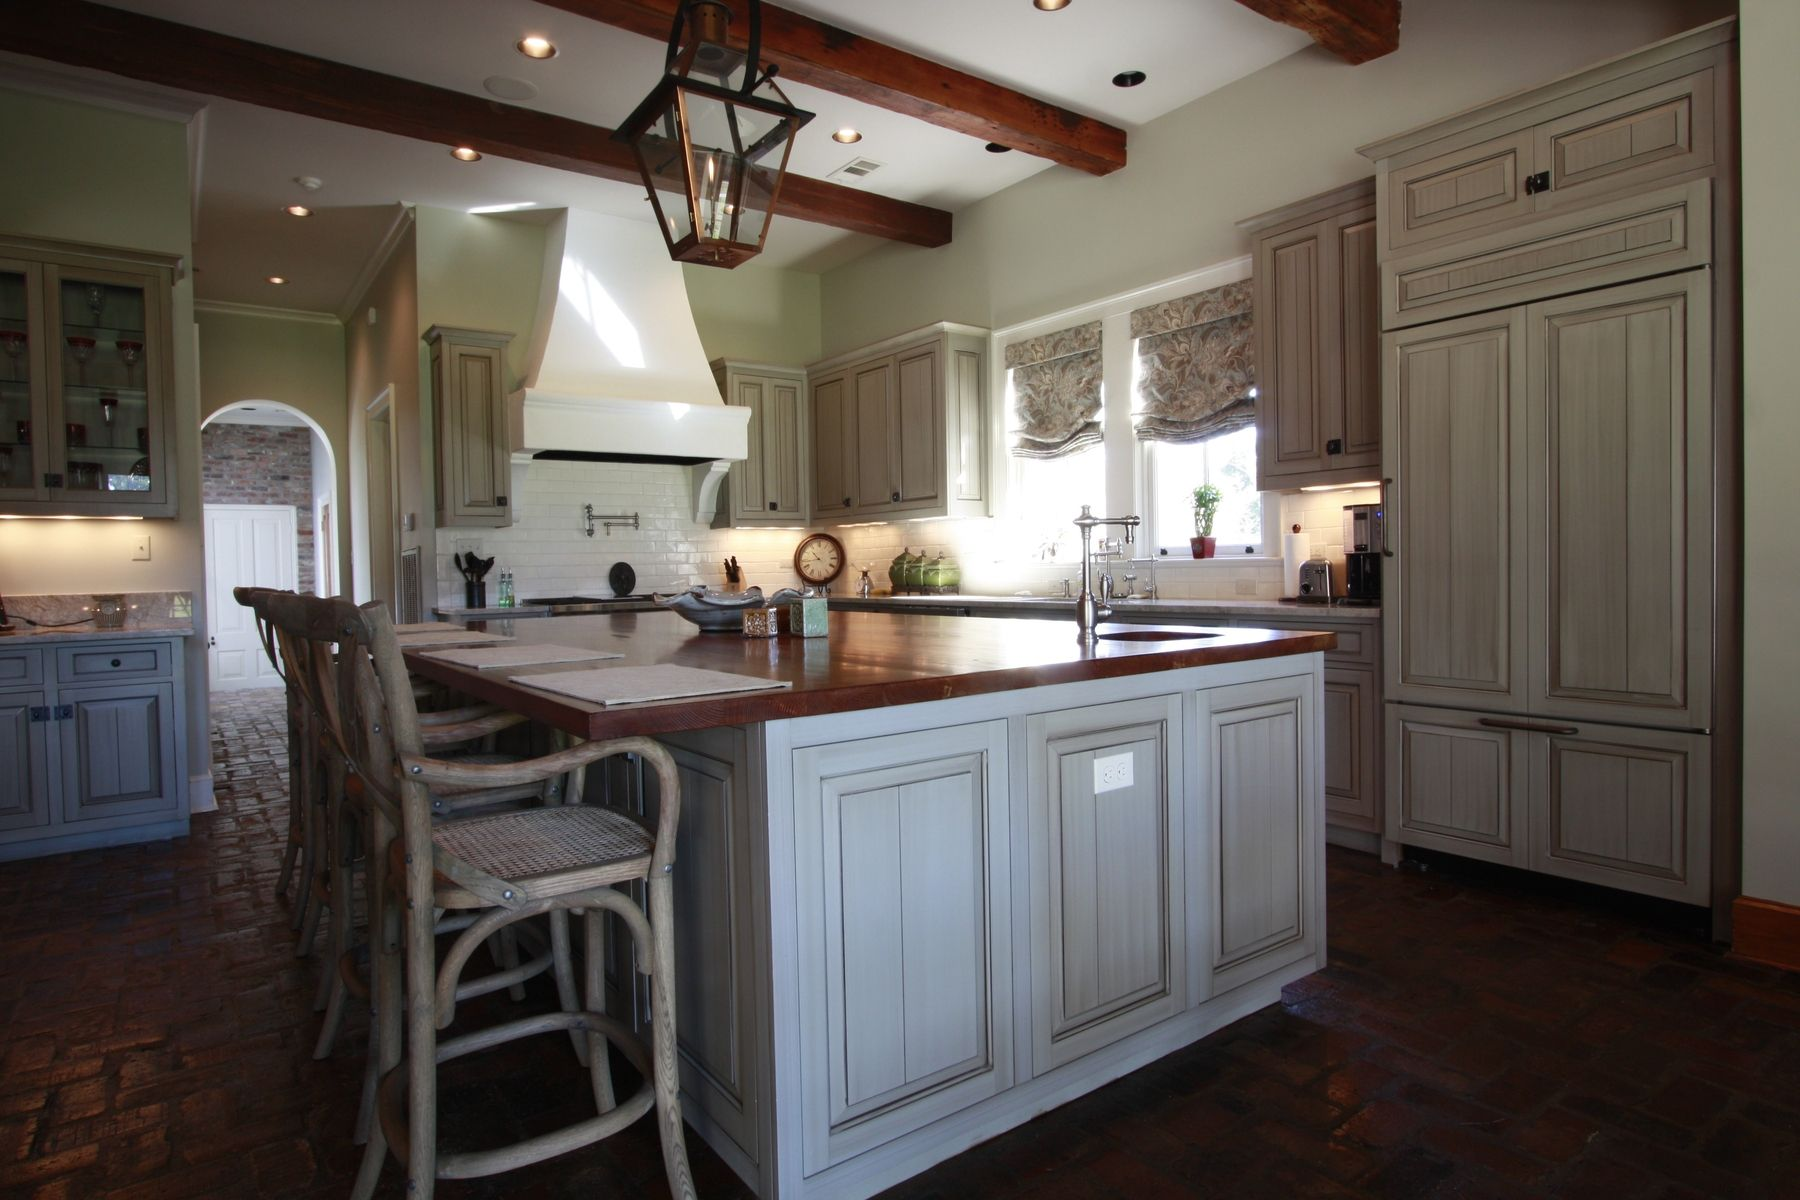 Custom Made Cabinets Handmade Custom Kitchen With Glazed Cabinets By Northshore